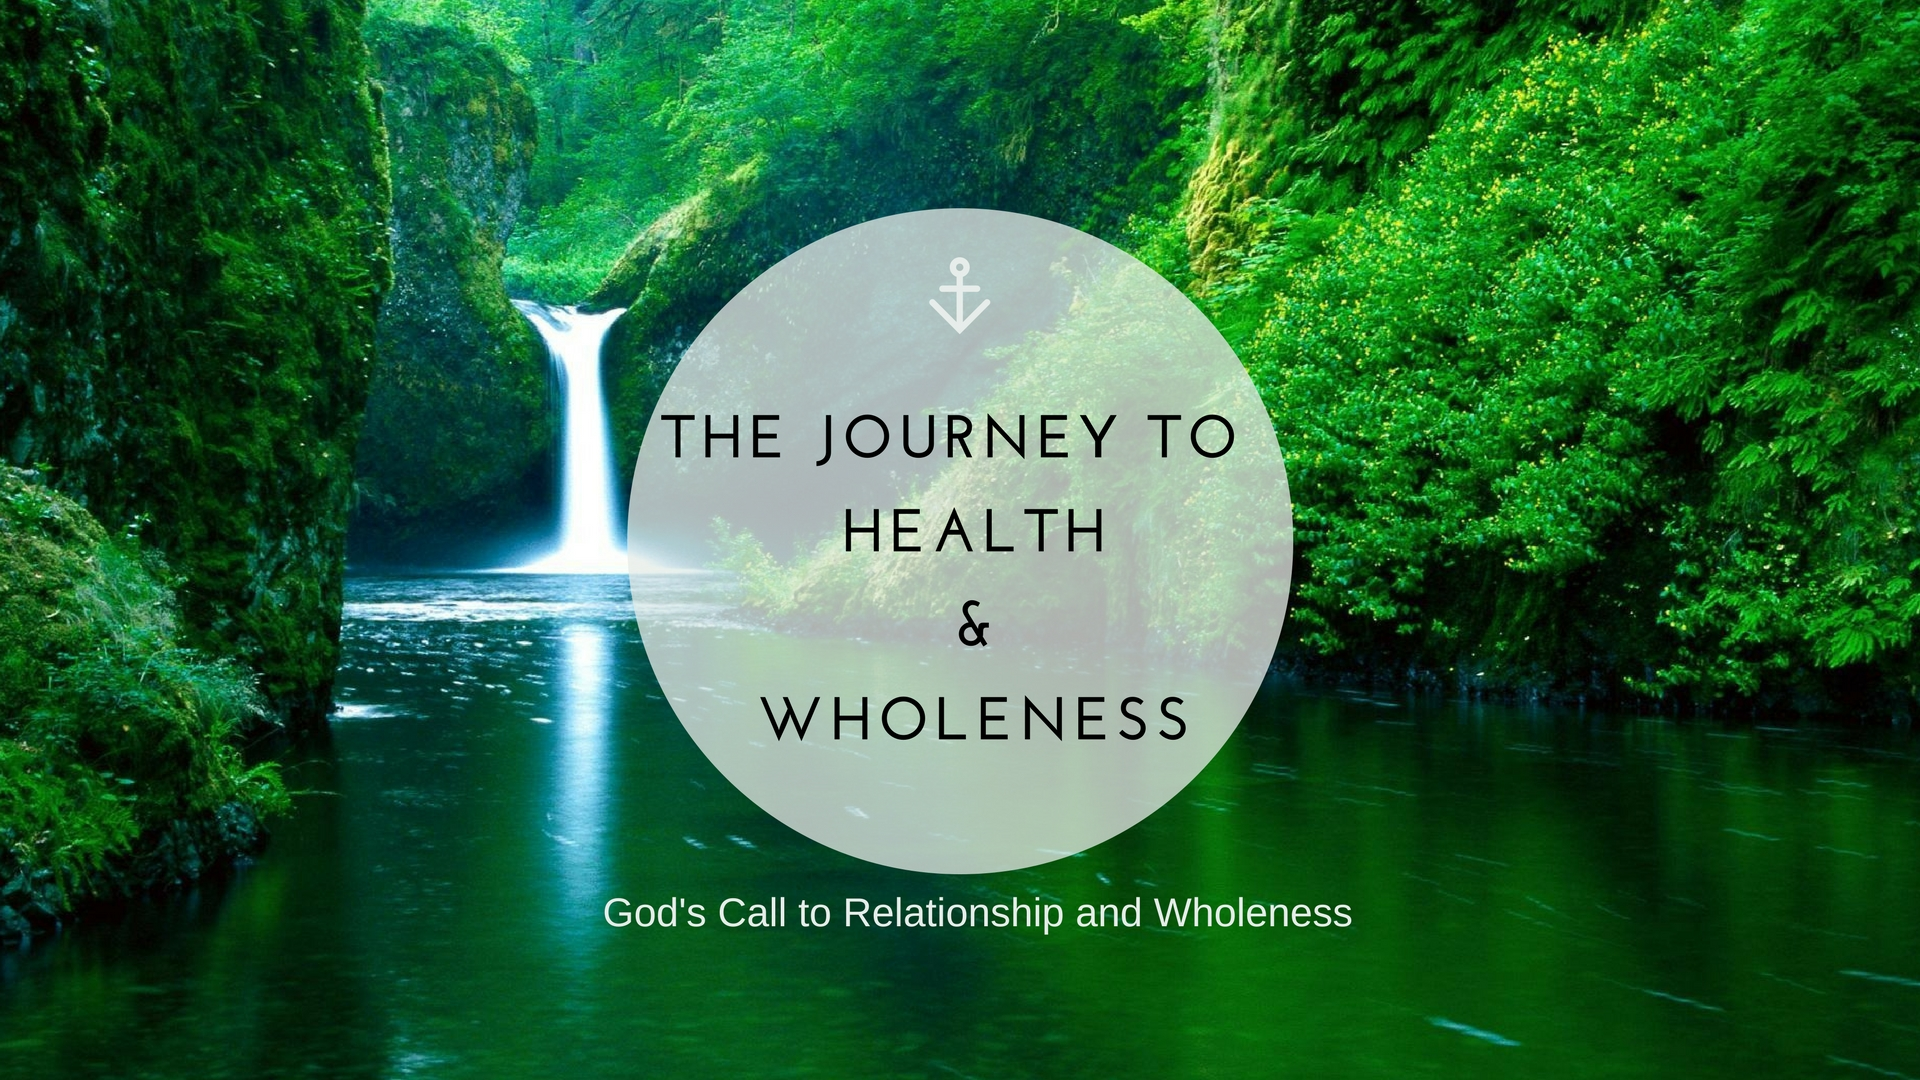 The Journey to health and wholeness-God's call to relationship and wholeness